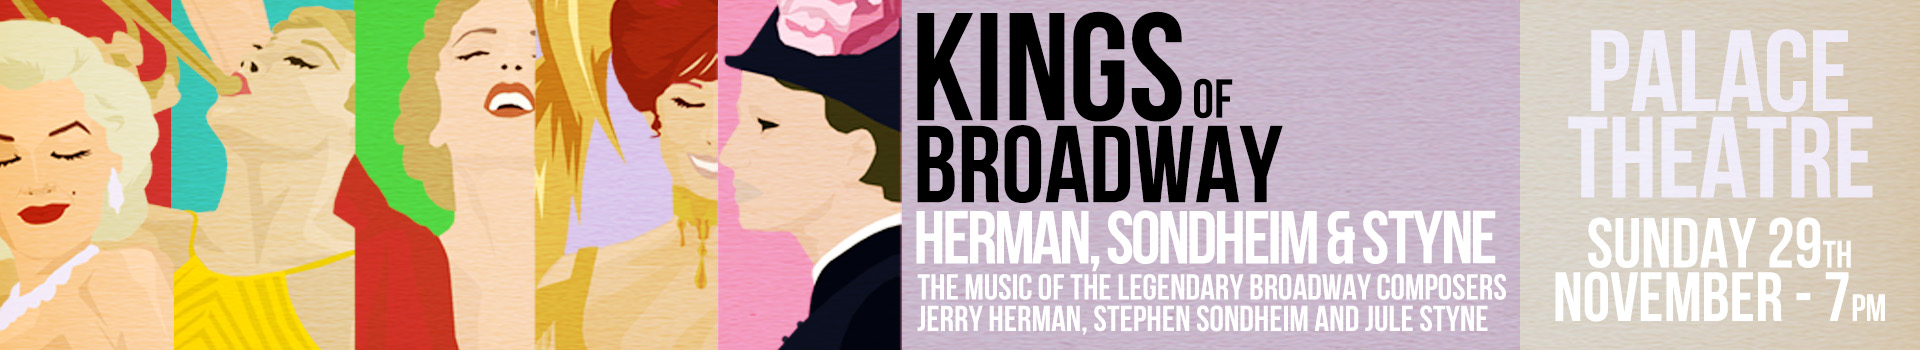 Kings of Broadway tickets London Palace Theatre